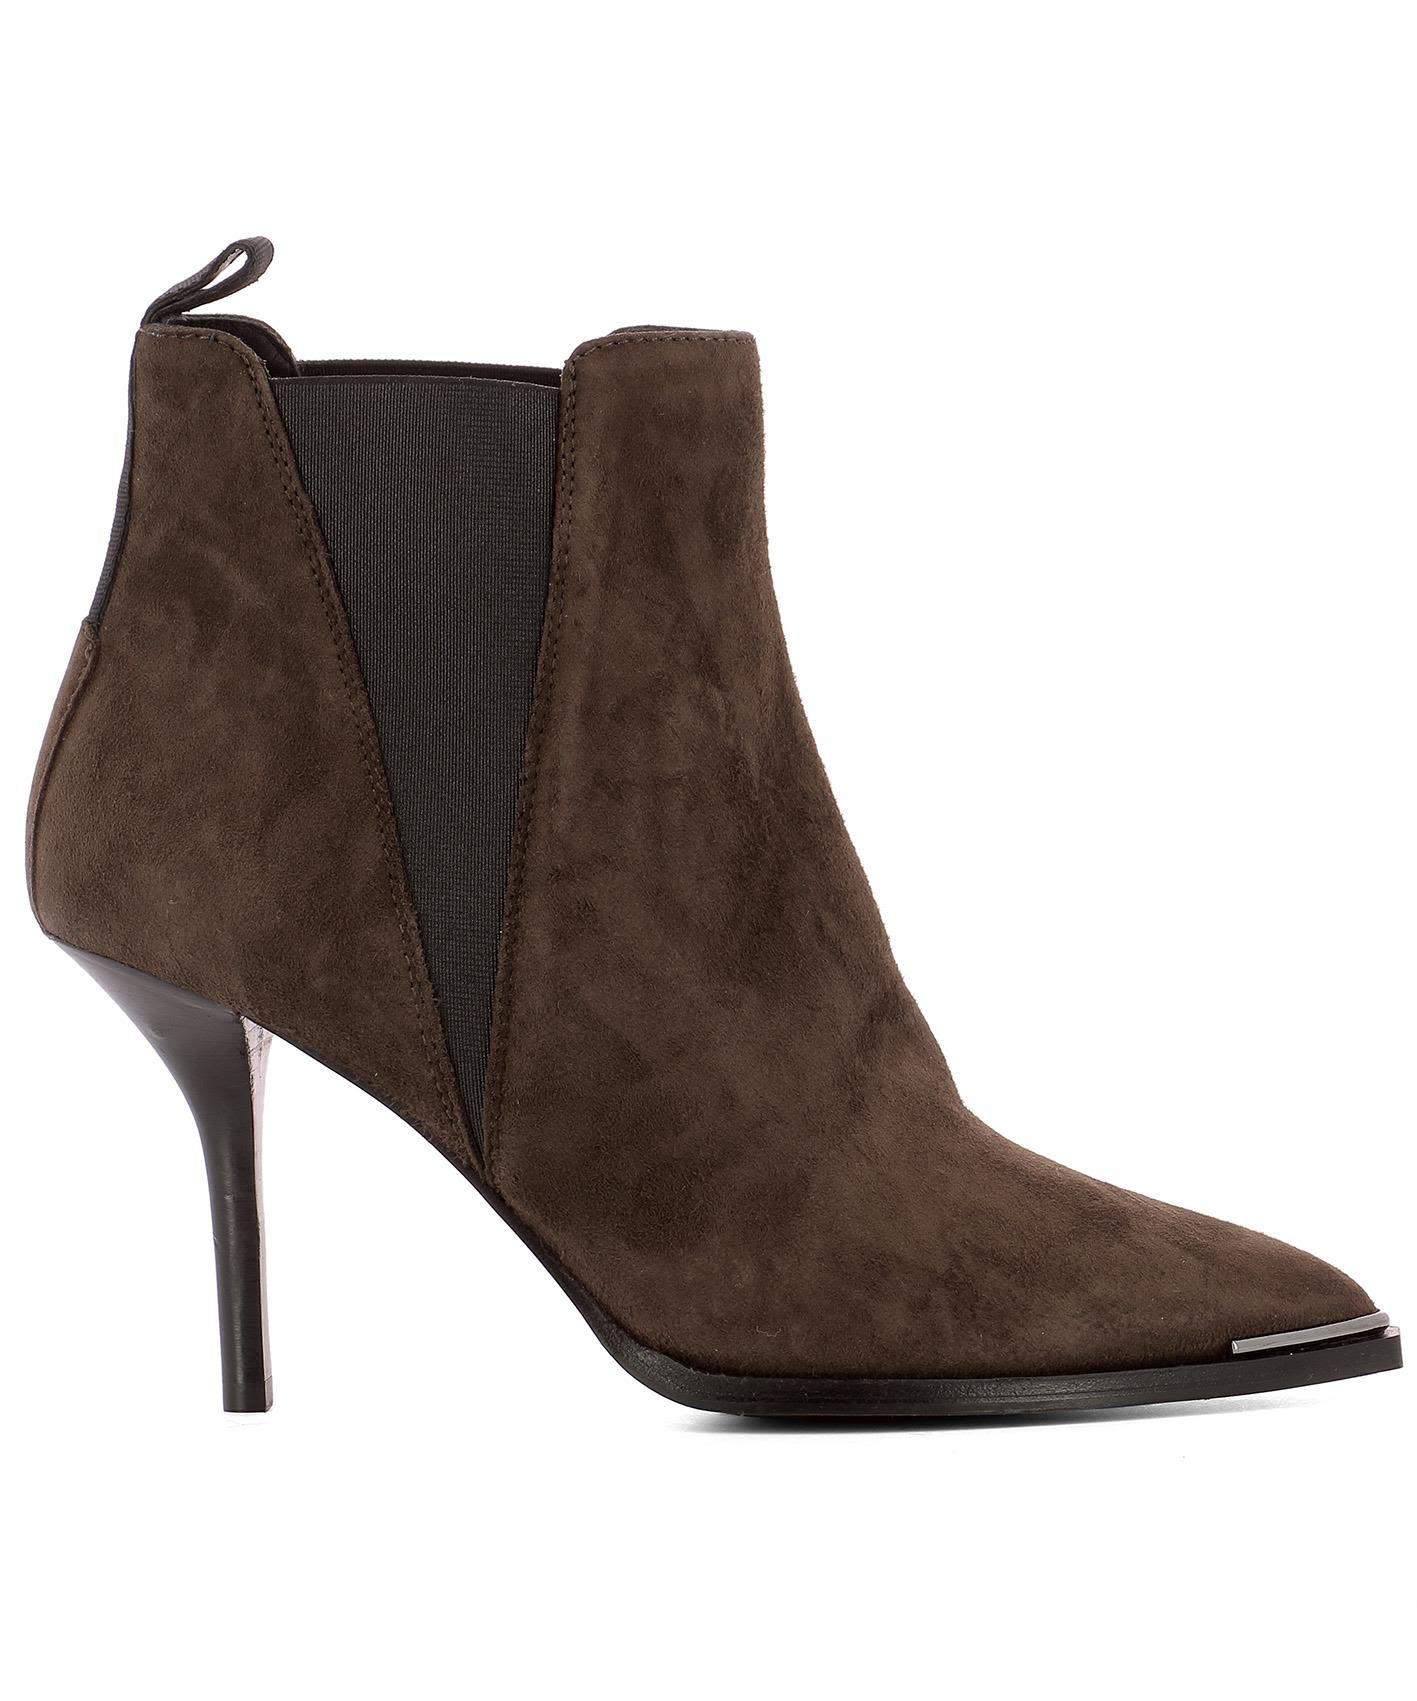 Acne Studios - Brown Suede Heeled Ankle Boots - Brown ...